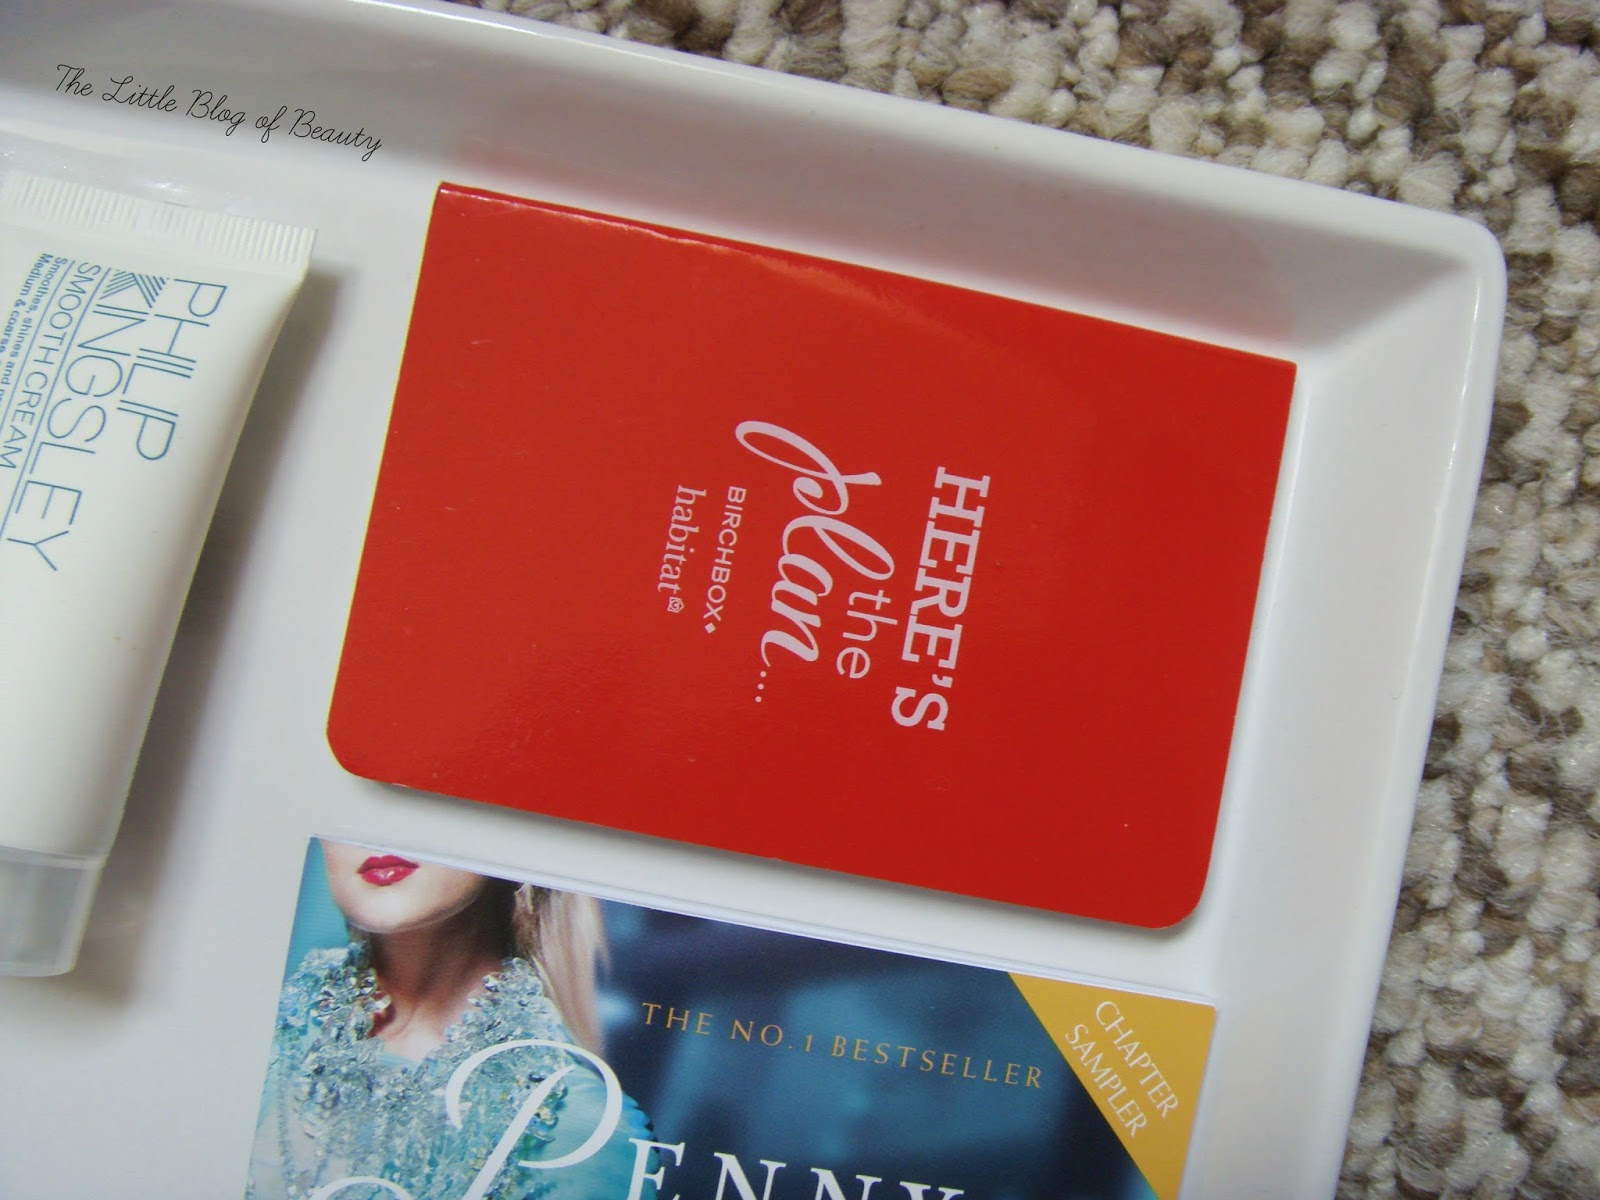 Birchbox March 2015 - 'Do try this at home' with Habitat